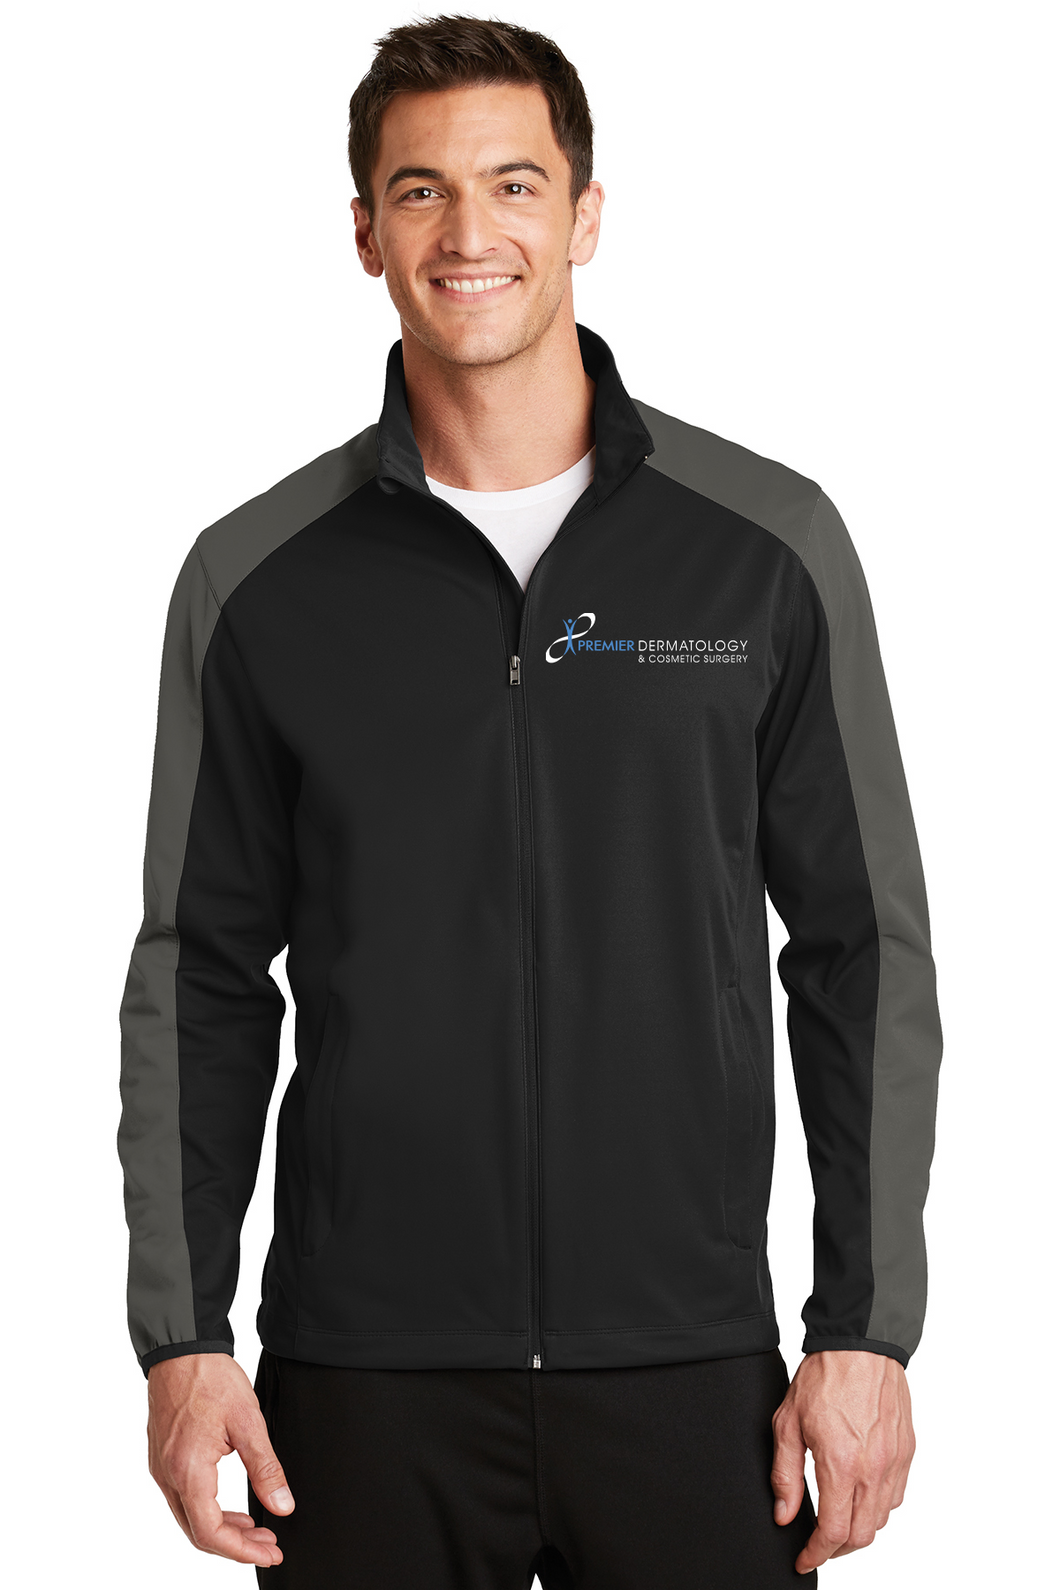 Premier Dermatology Port Authority Active Colorblock Soft Shell Jacket with Custom Name & Title